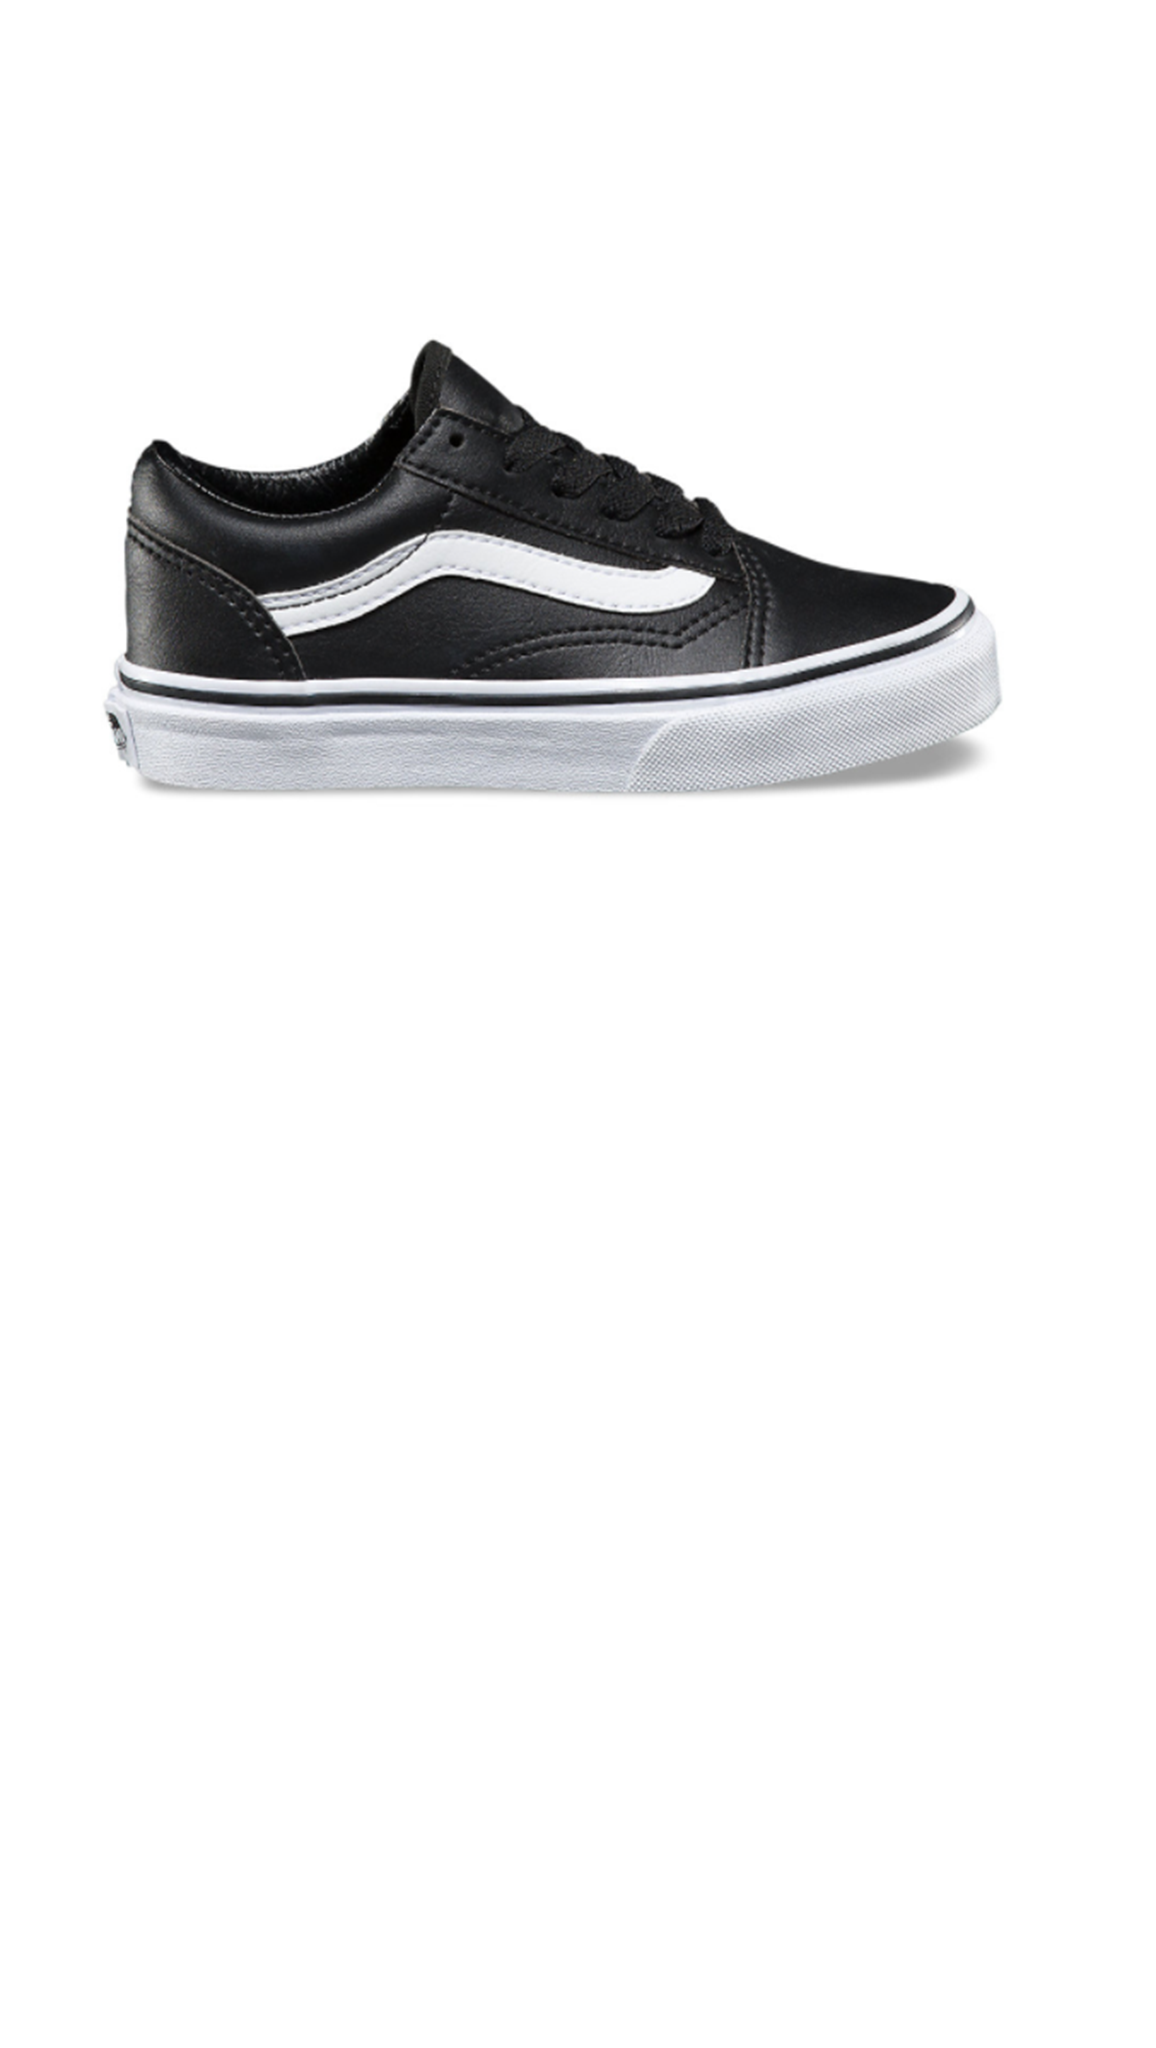 Vans, Old Skool Classic Tumble - Black/ True White